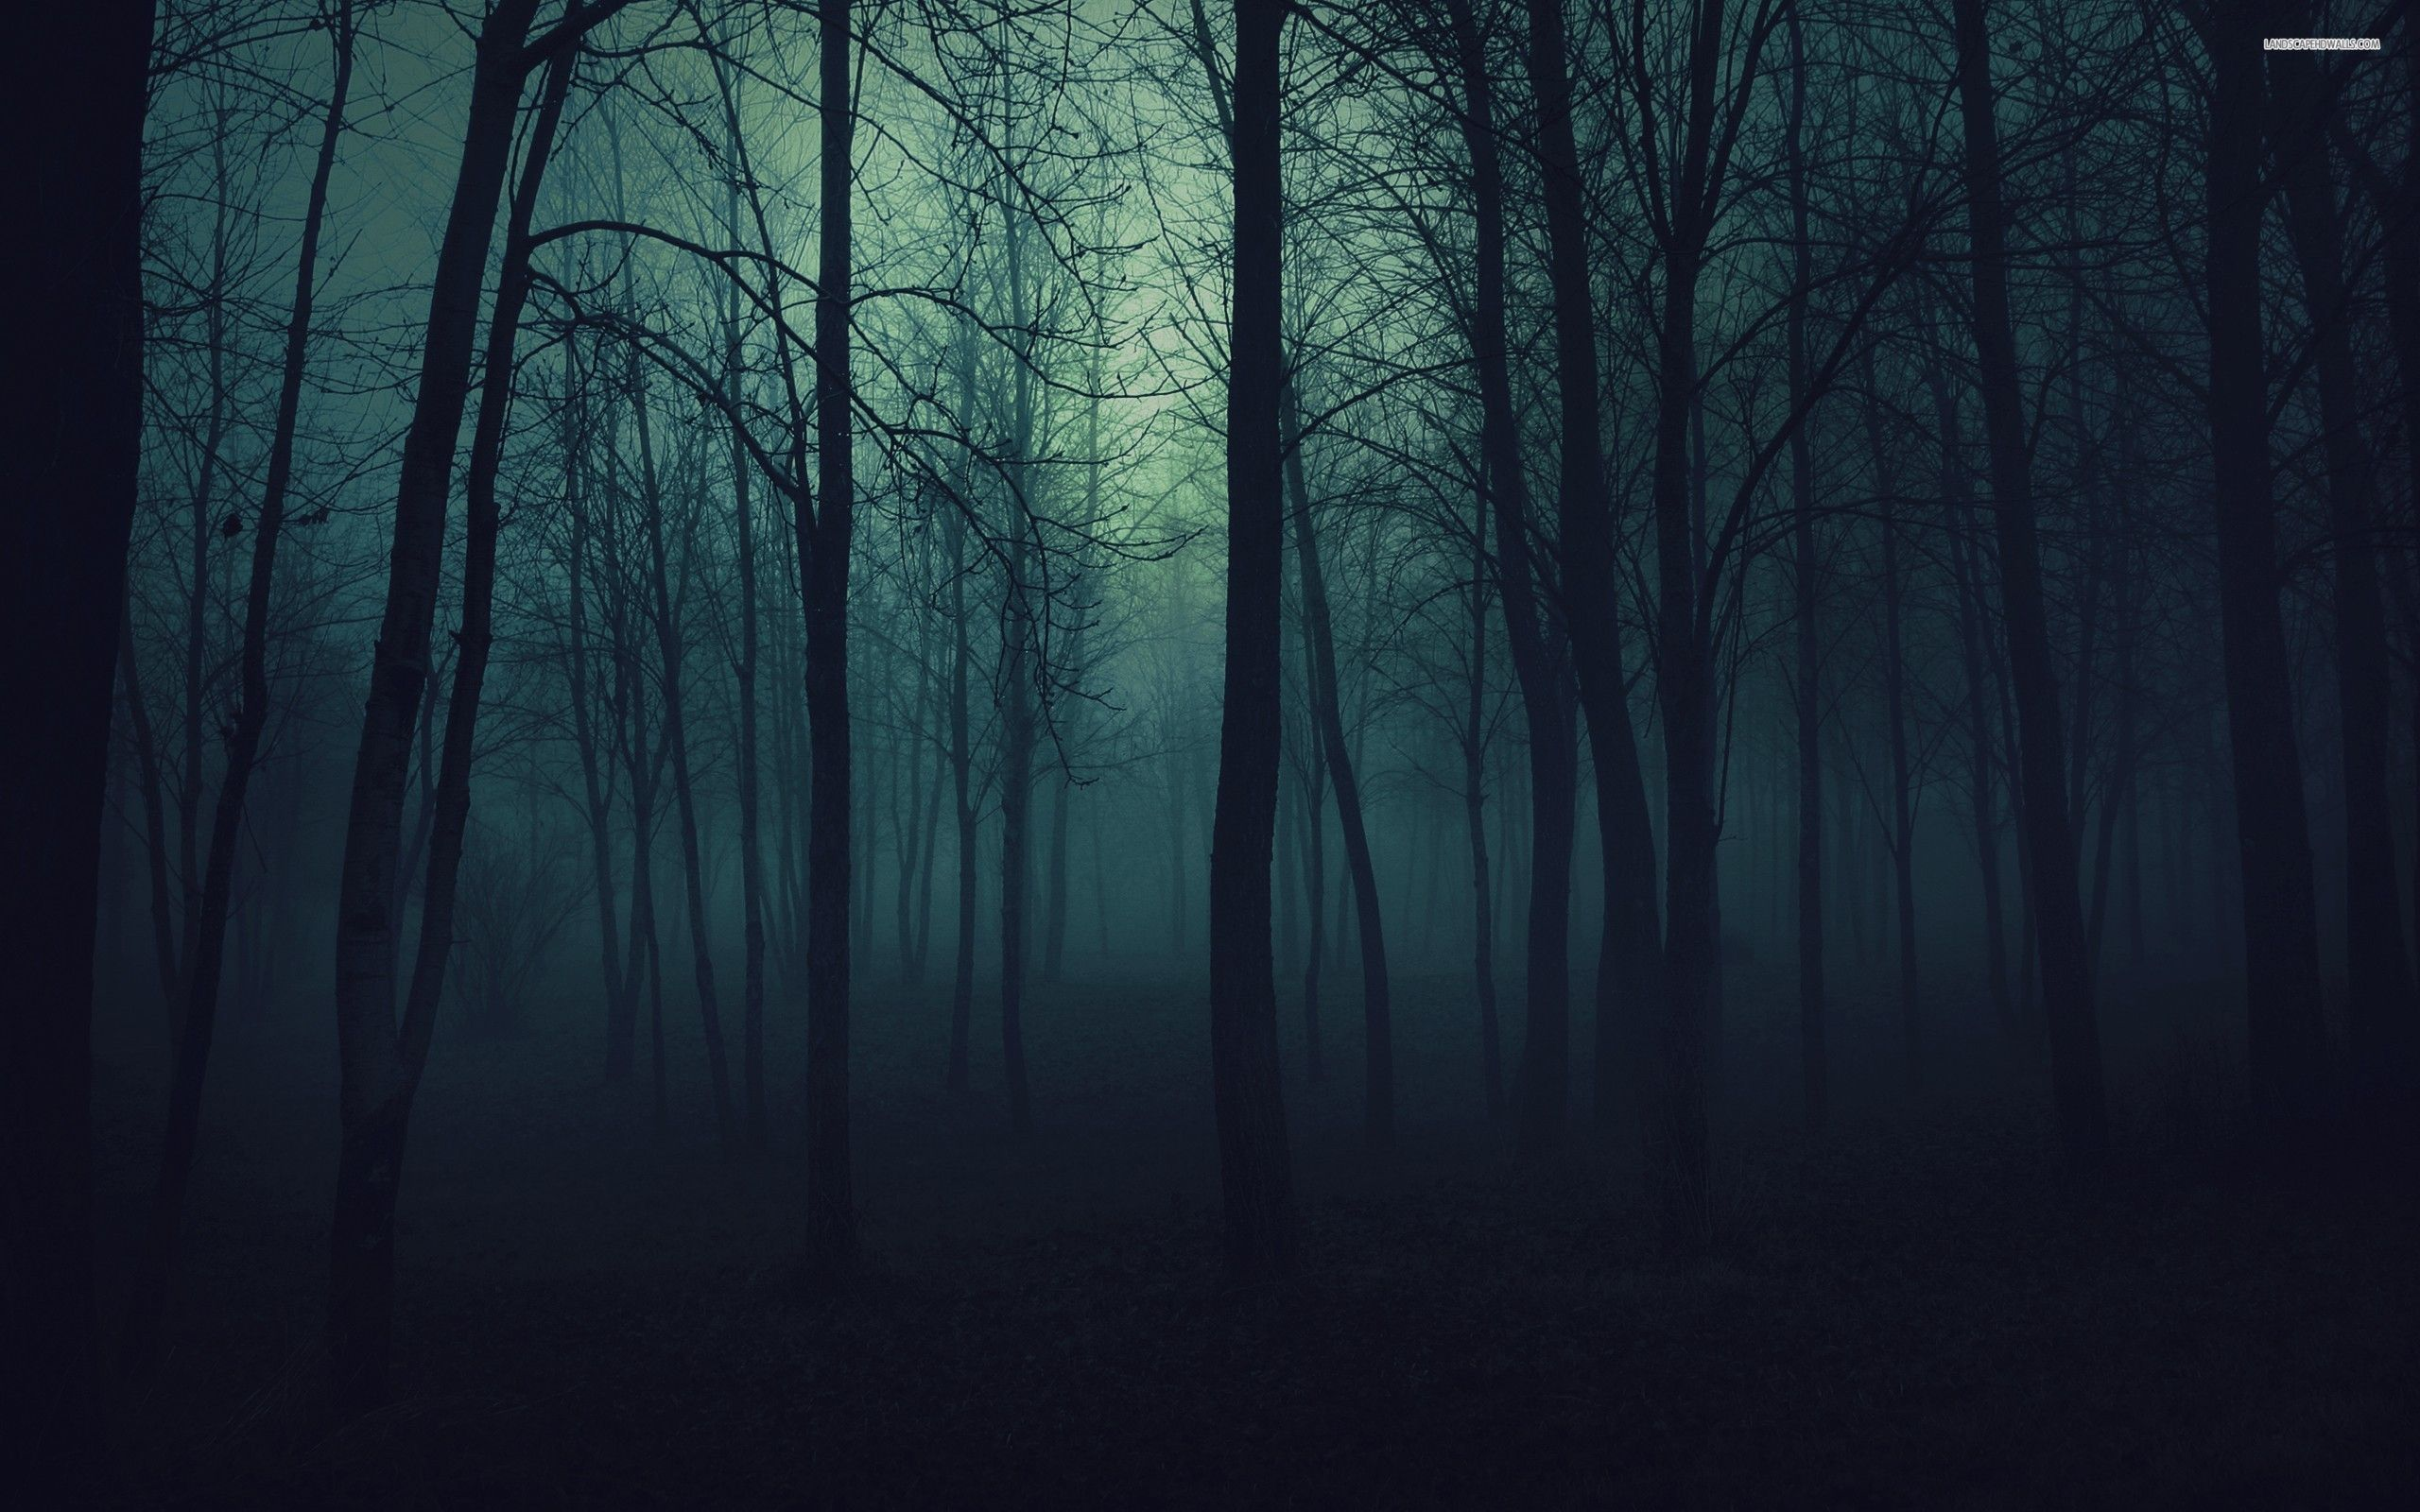 Forest At Night Trees In The Forest At Night Wallpaper 689 Night Forest Misty Forest Forest Wallpaper